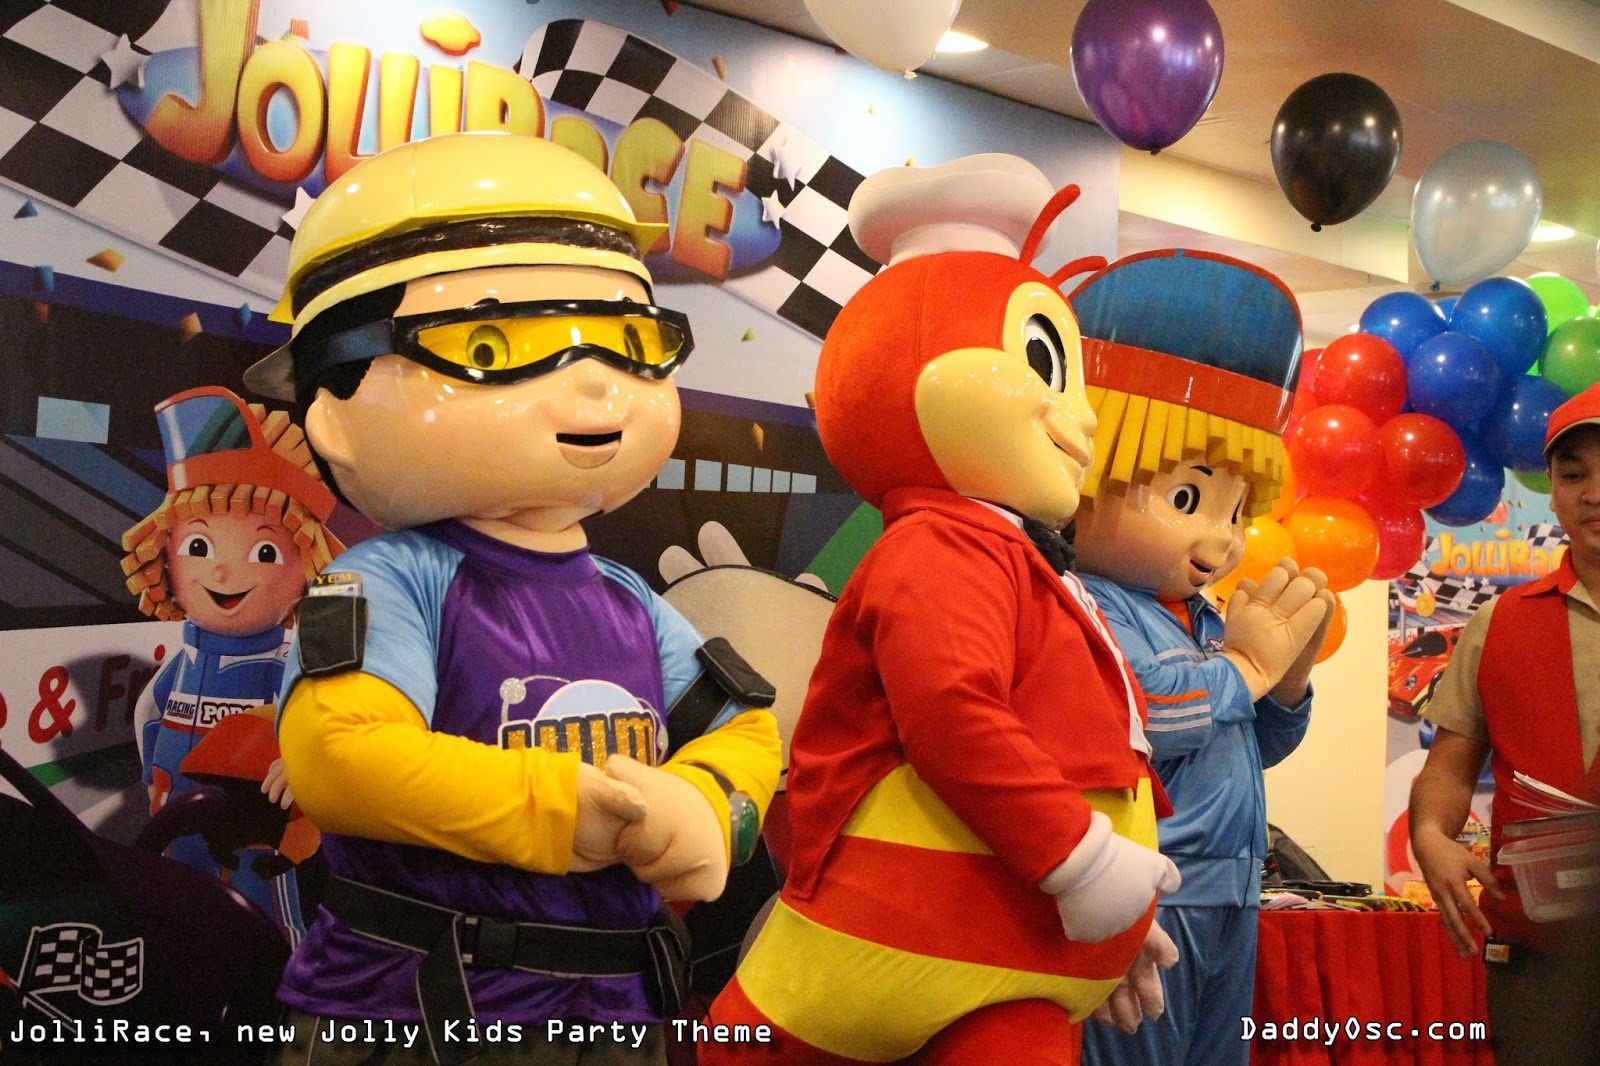 All These Plus Jollibee Langhap Sarap Favorites Chickenjoy Spaghetti And Yumburger Meals Make The JolliRace Jolly Kids Party A Sure Winner